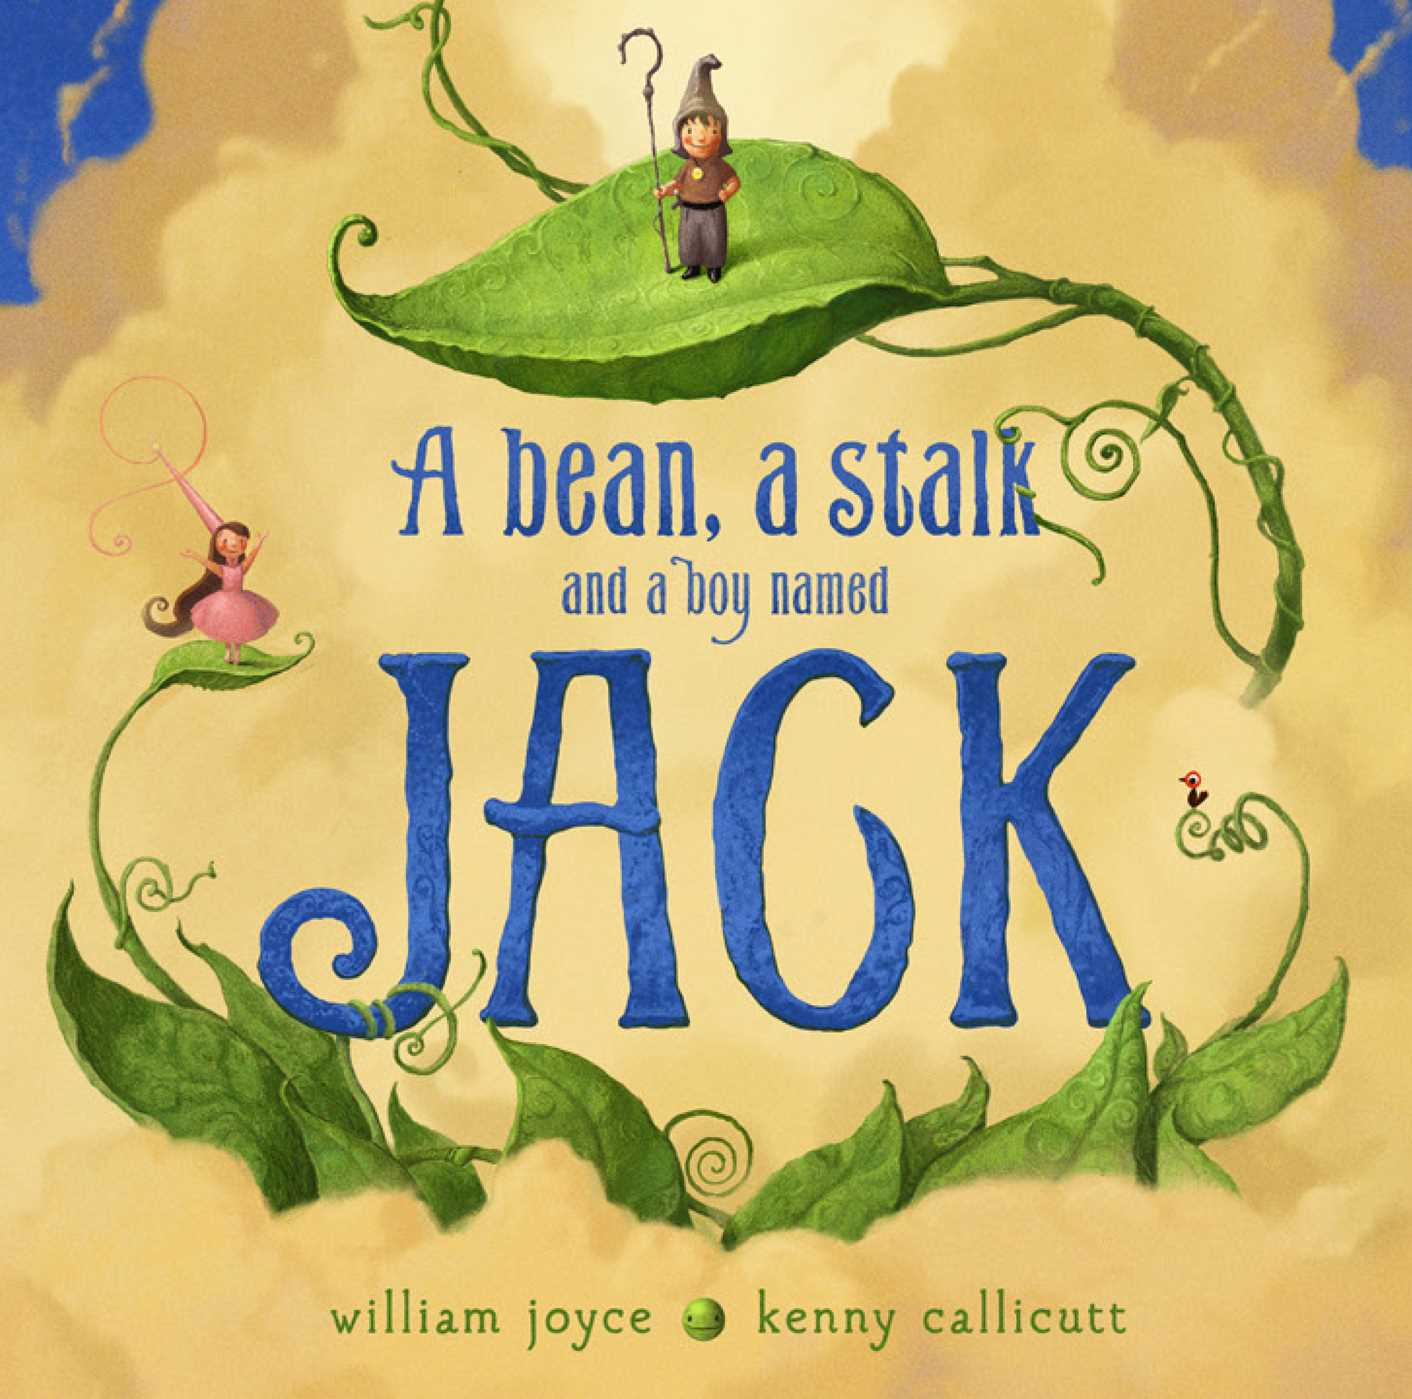 Bean-a-stalk-and-a-boy-named-jack-9781442473508_hr